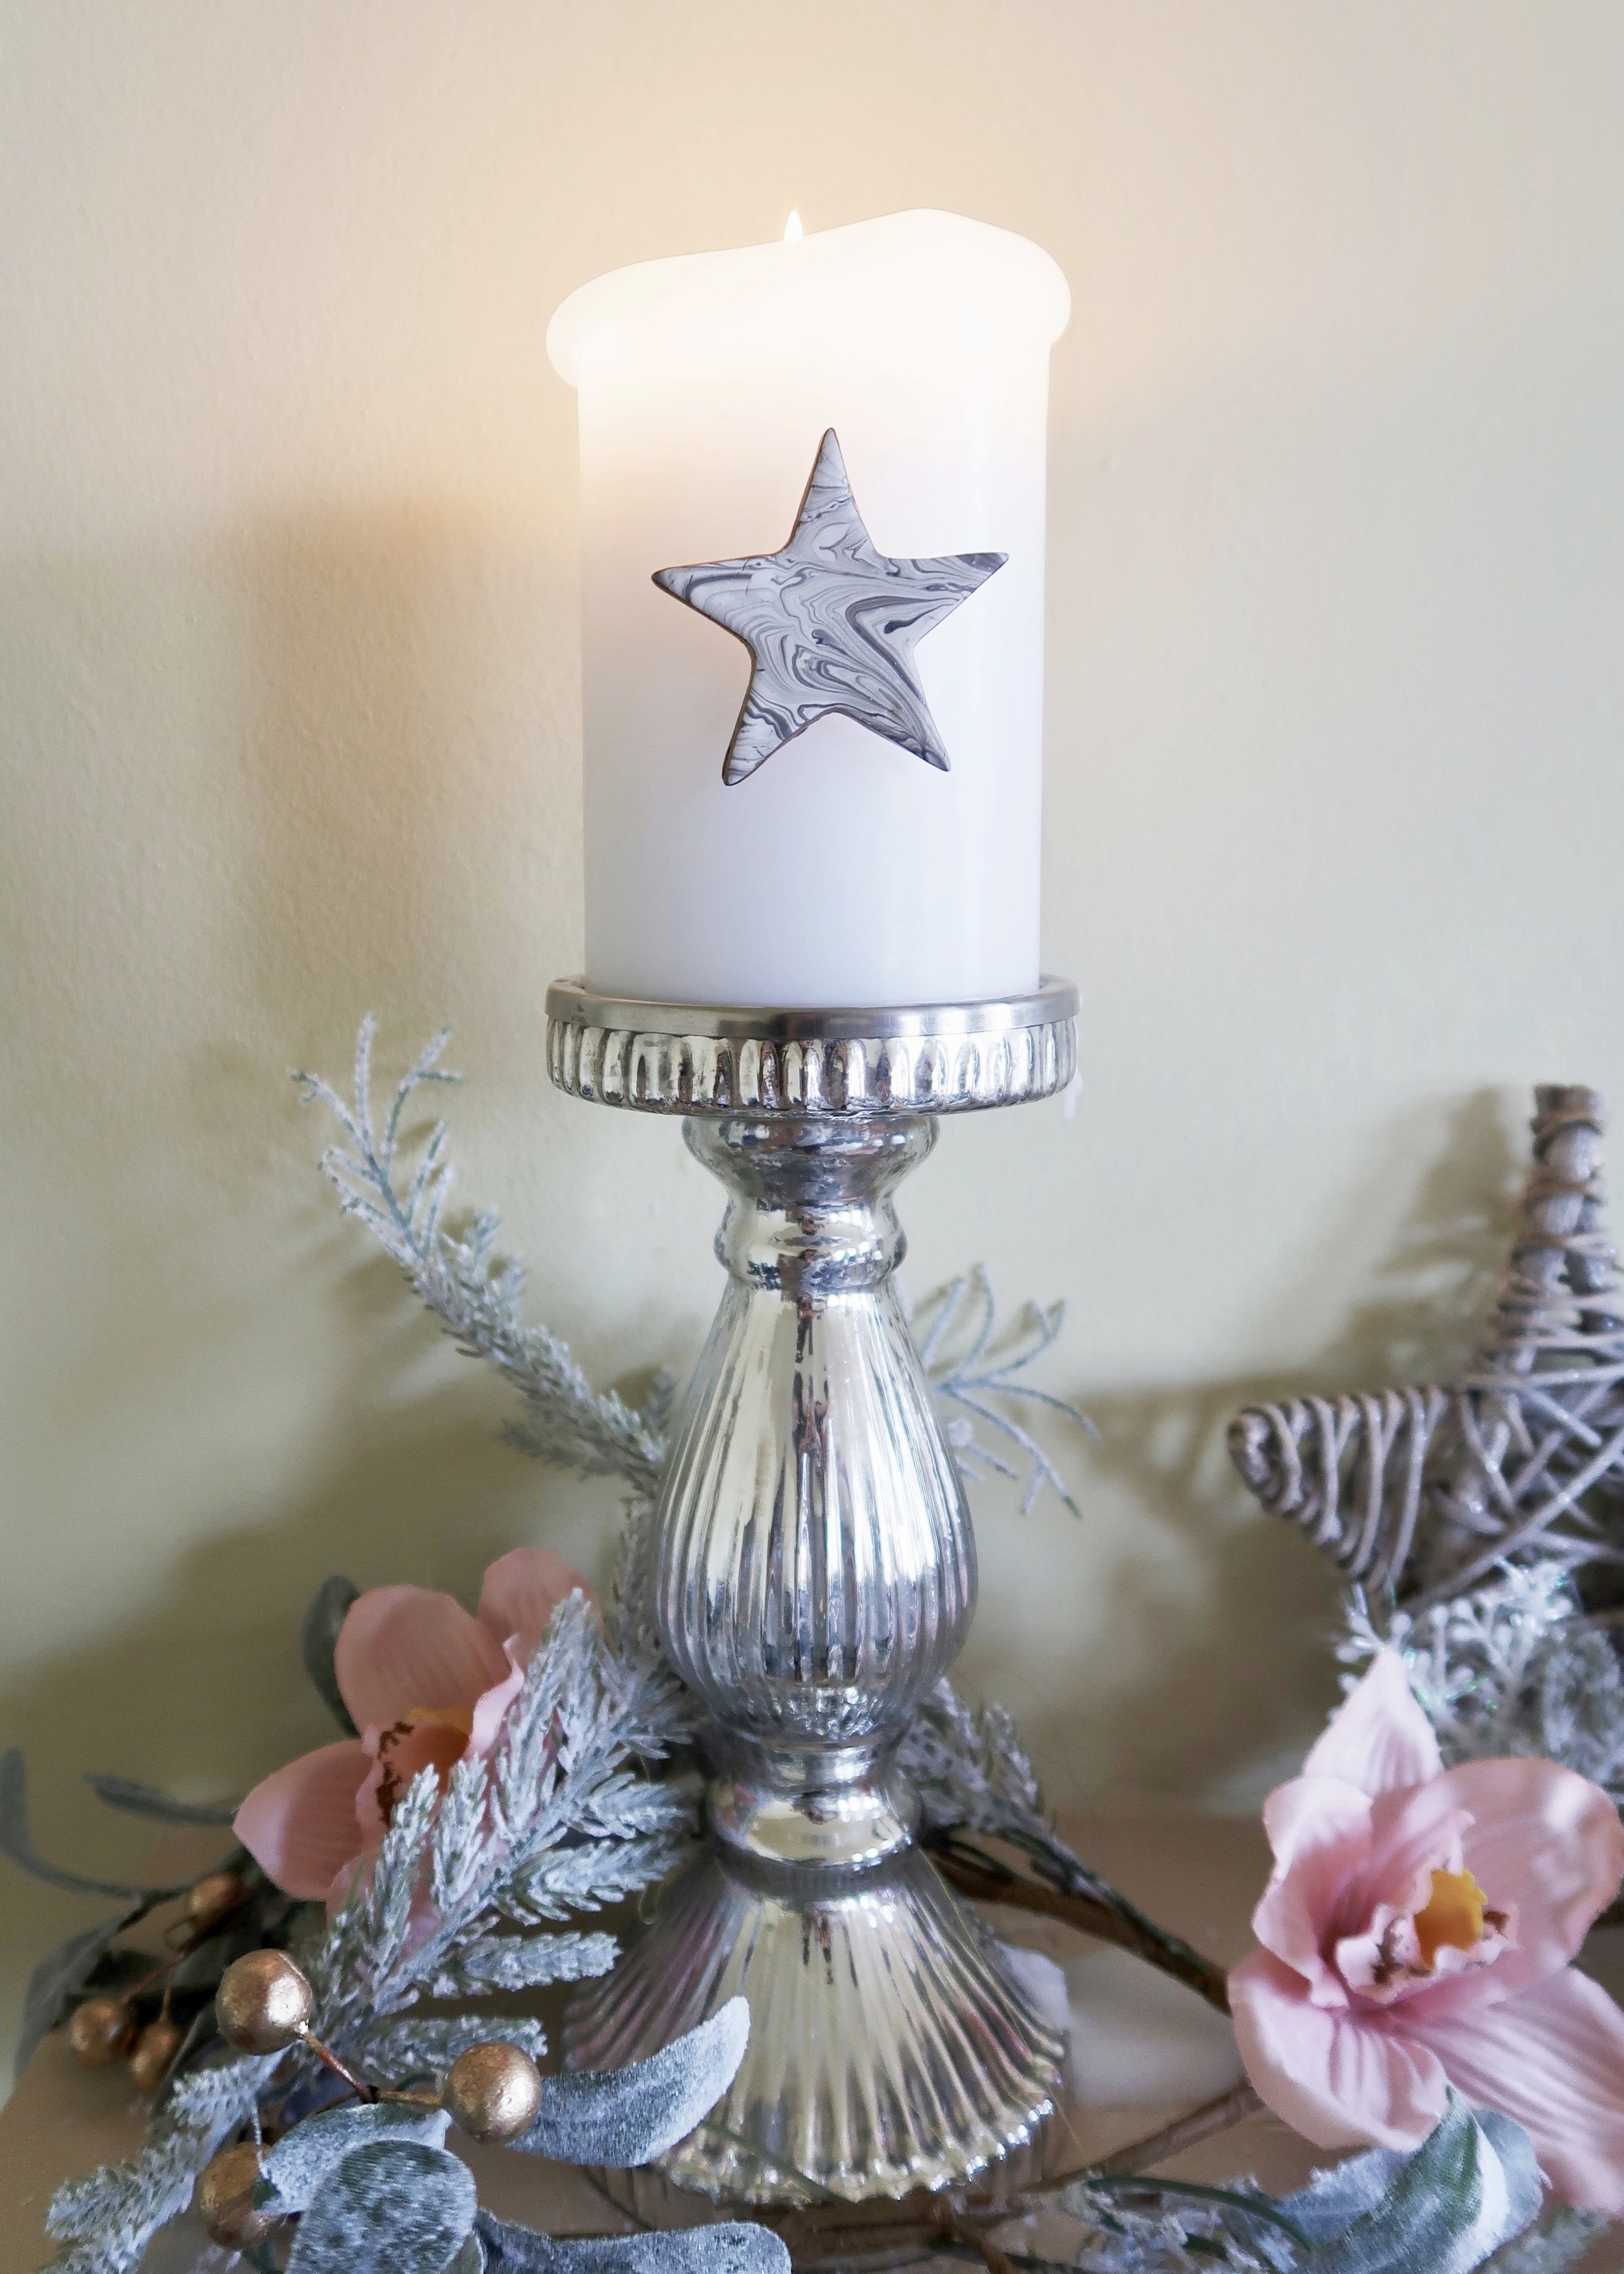 DIY Marble Star Candle Pin by Isoscella